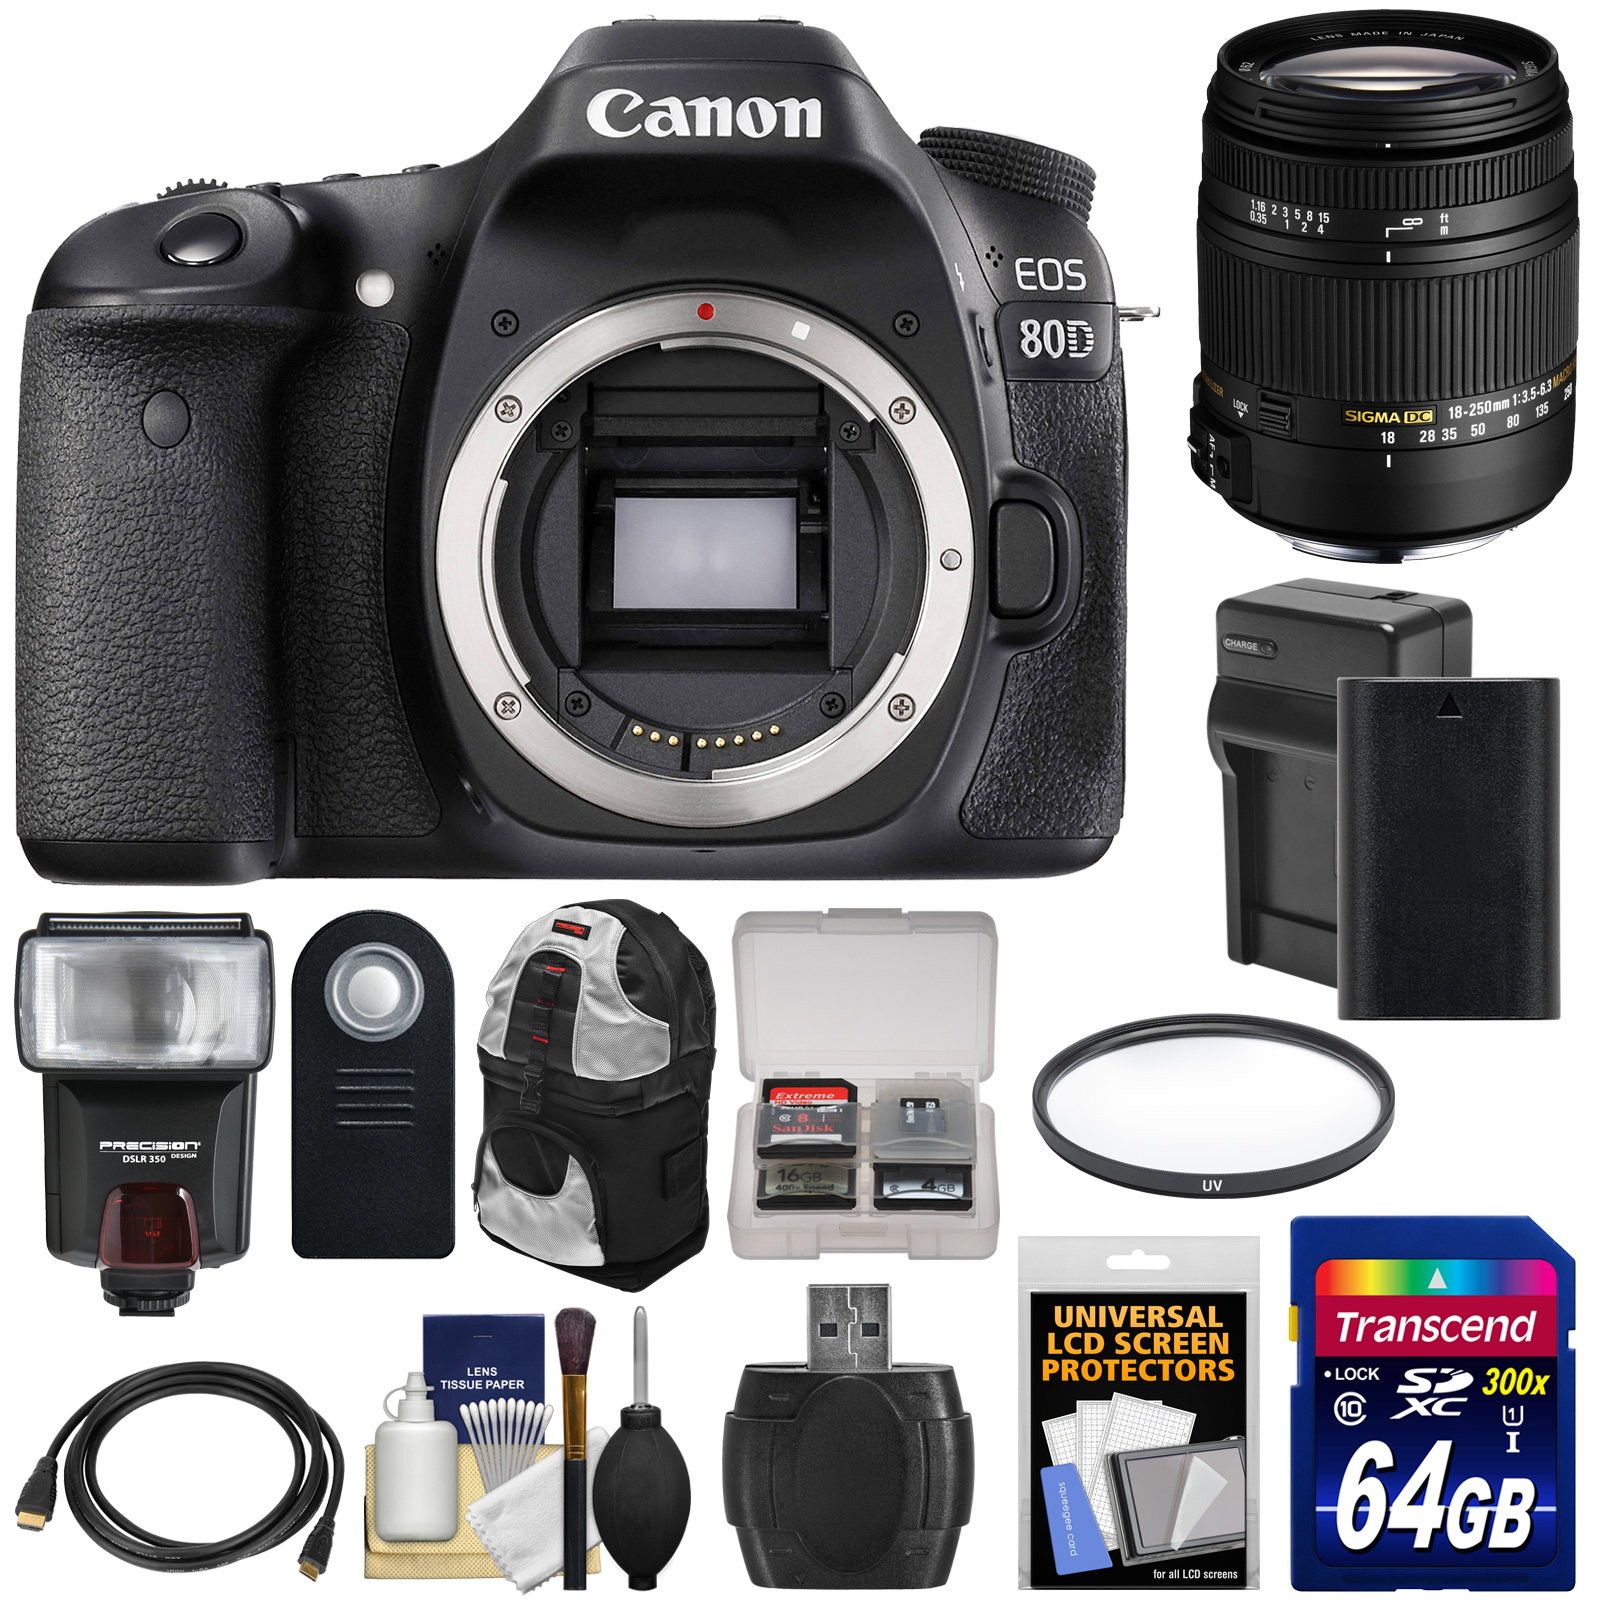 Canon EOS 80D Wi-Fi Digital SLR Camera Body with Sigma 18-250mm OS Lens + 64GB Card + Battery & Charger + Backpack +... by Canon